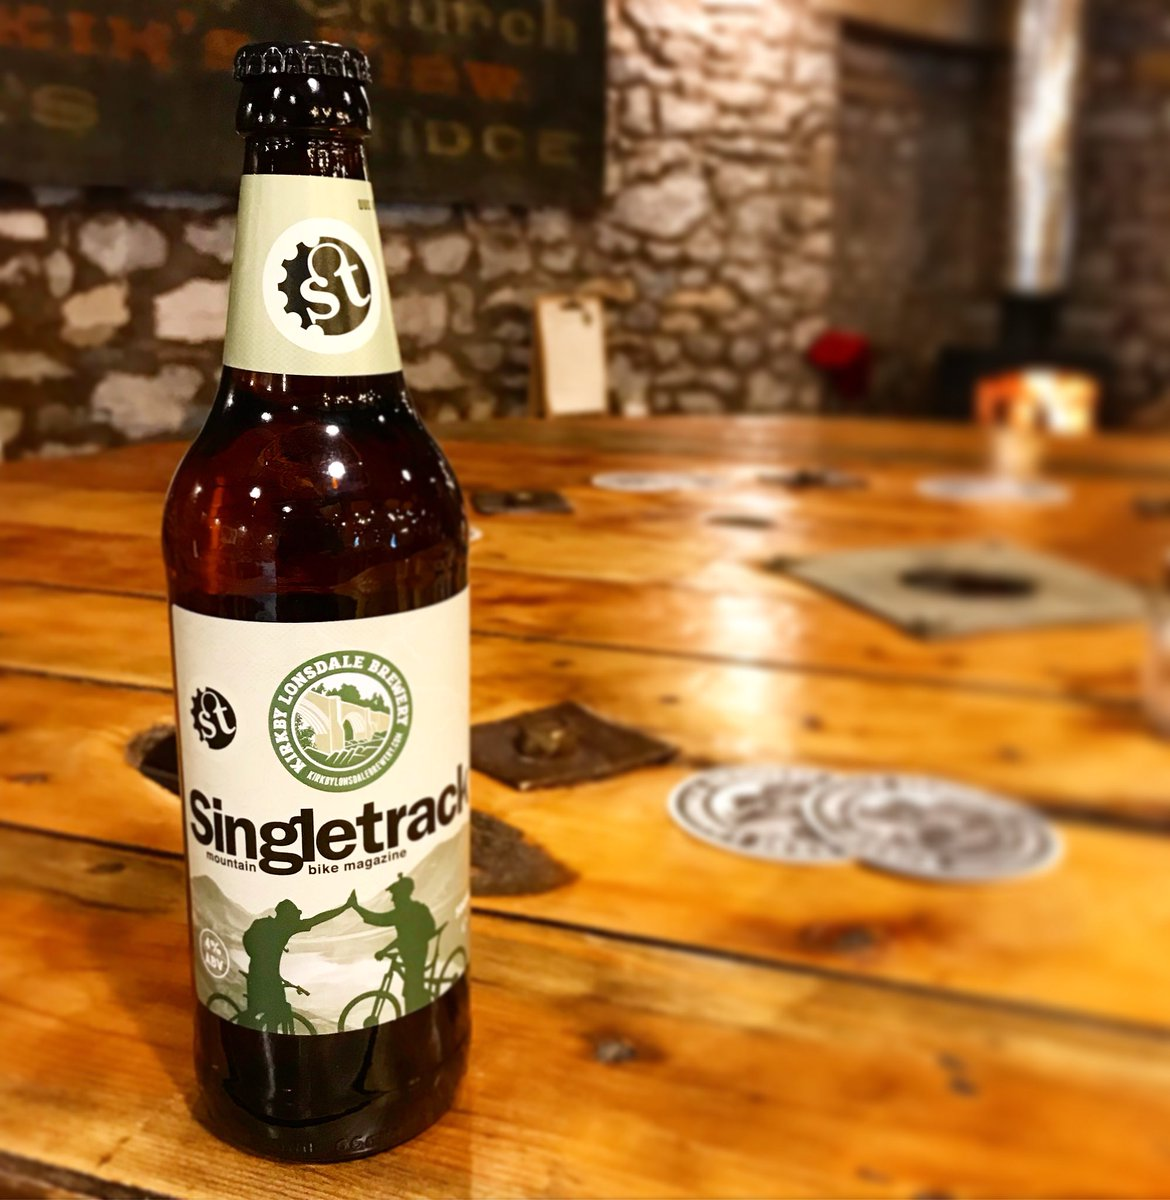 Now available, grab yours while you can Singletrack flowy ale!!  @singletrackmag #bikes #beer #mtb #craftbeer<br>http://pic.twitter.com/dOoV5i4yV4